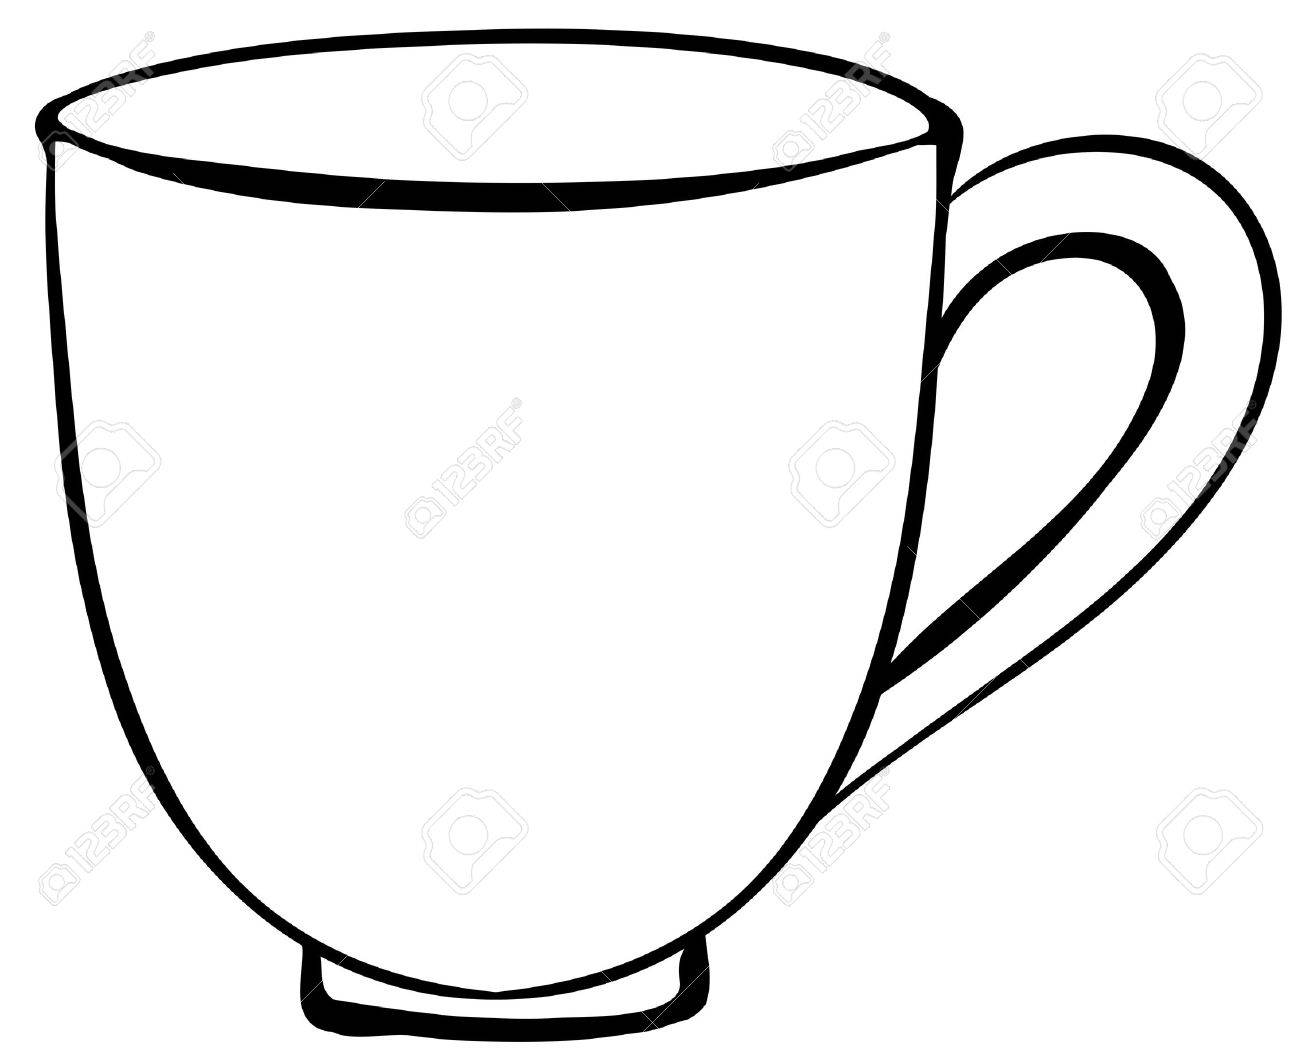 closeup plain design of coffee cup royalty free cliparts vectors rh 123rf com cup clipart outline cup clipart images